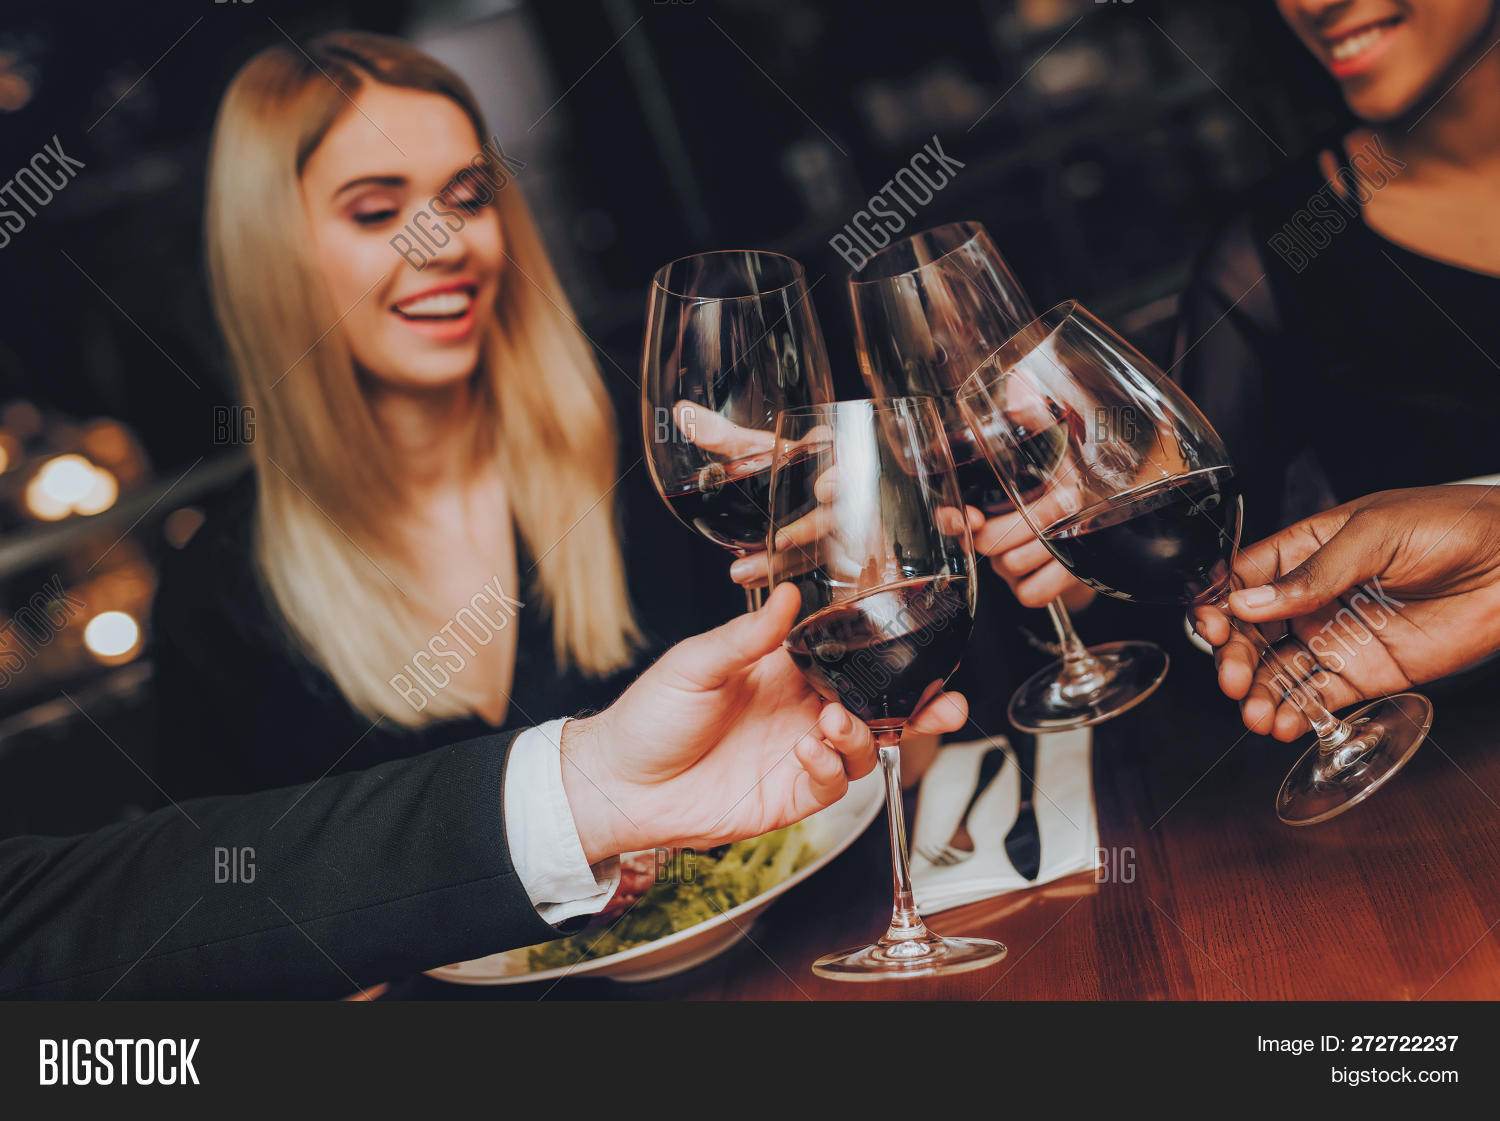 african,alcohol,american,asian,black,caucasian,celebration,couple,cultural,cute,drink,eating,enjoyment,ethnic,evening,female,food,friends,fun,group,handsome,happy,having,hispanic,horizontal,indoor,laughing,making,male,meal,men,multi,night,out,party,people,person,relaxing,restaurant,sitting,six,smiling,table,thirties,toast,together,twenties,wine,women